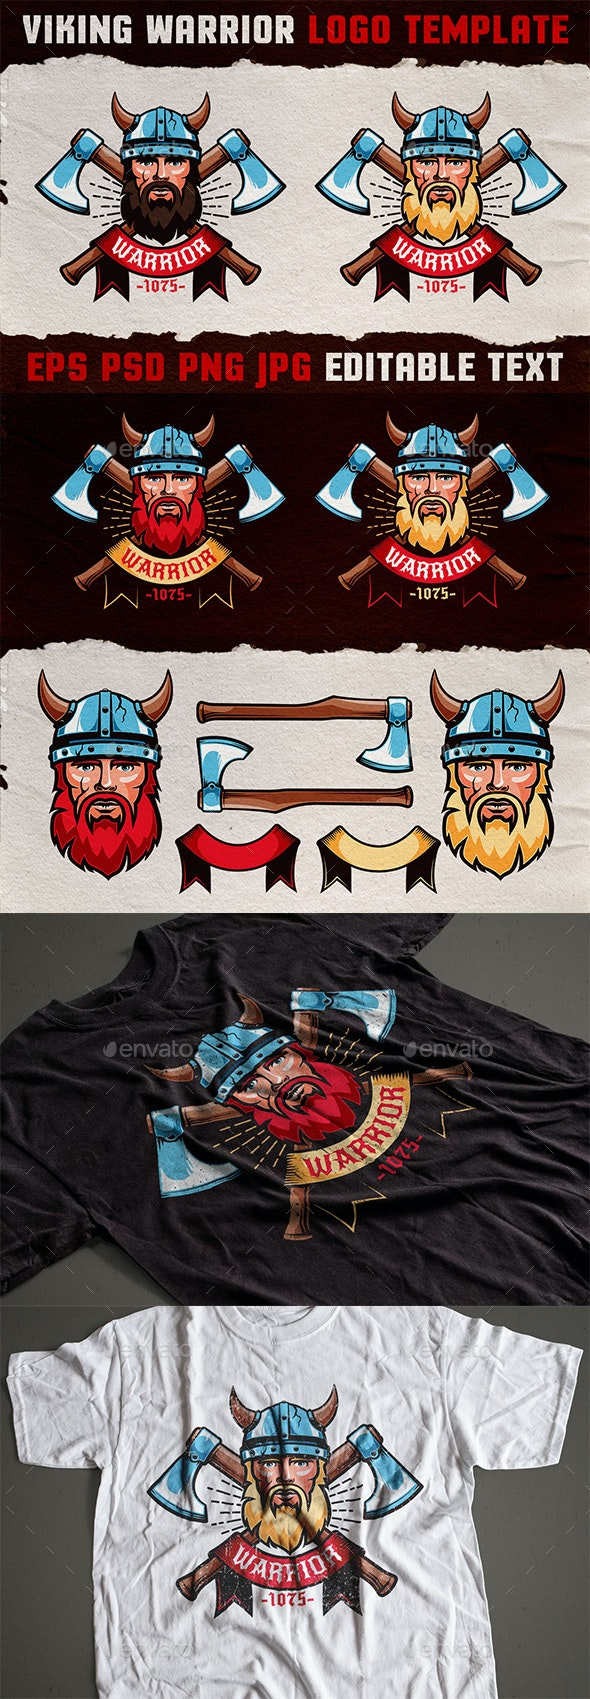 Viking Warrior Emblem Colored Template - Miscellaneous Vectors